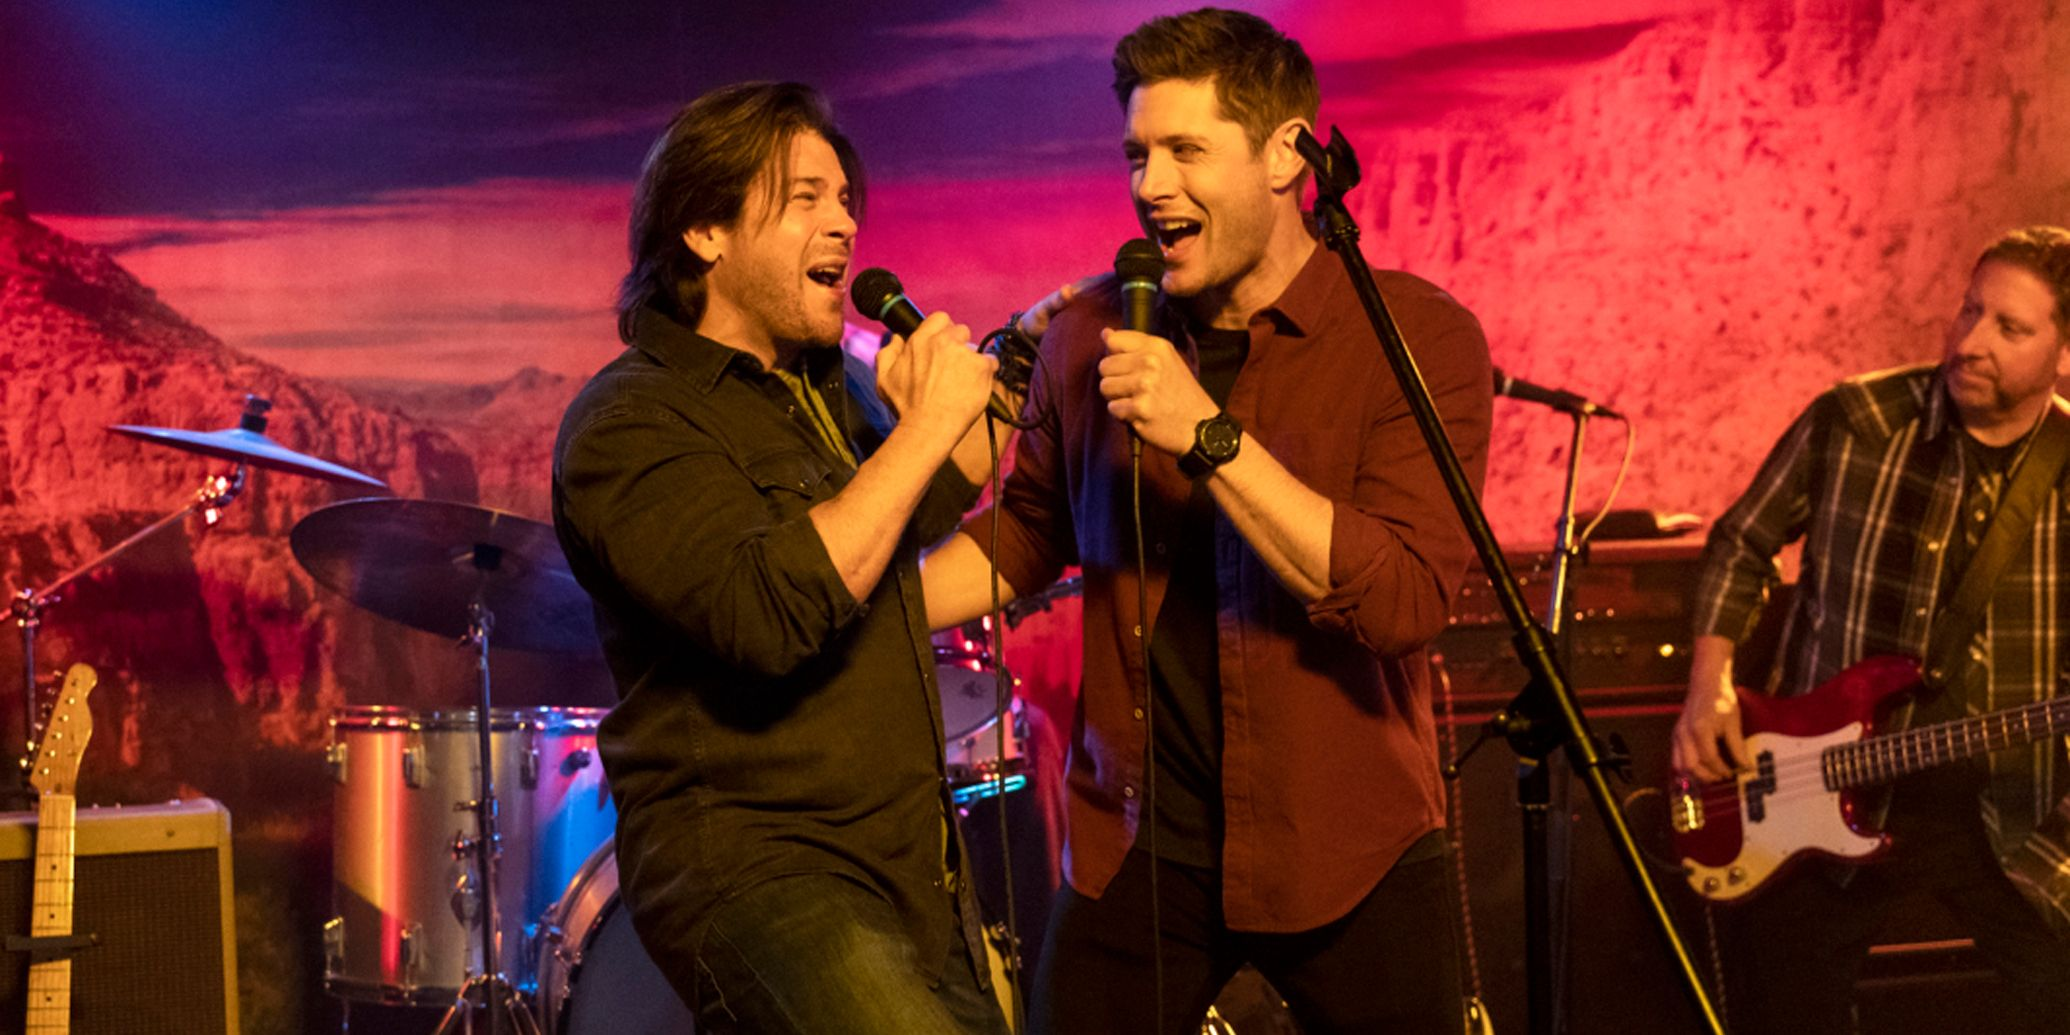 Supernatural Finale Title Has Cool Connection to Kansas SongSupernatural Finale